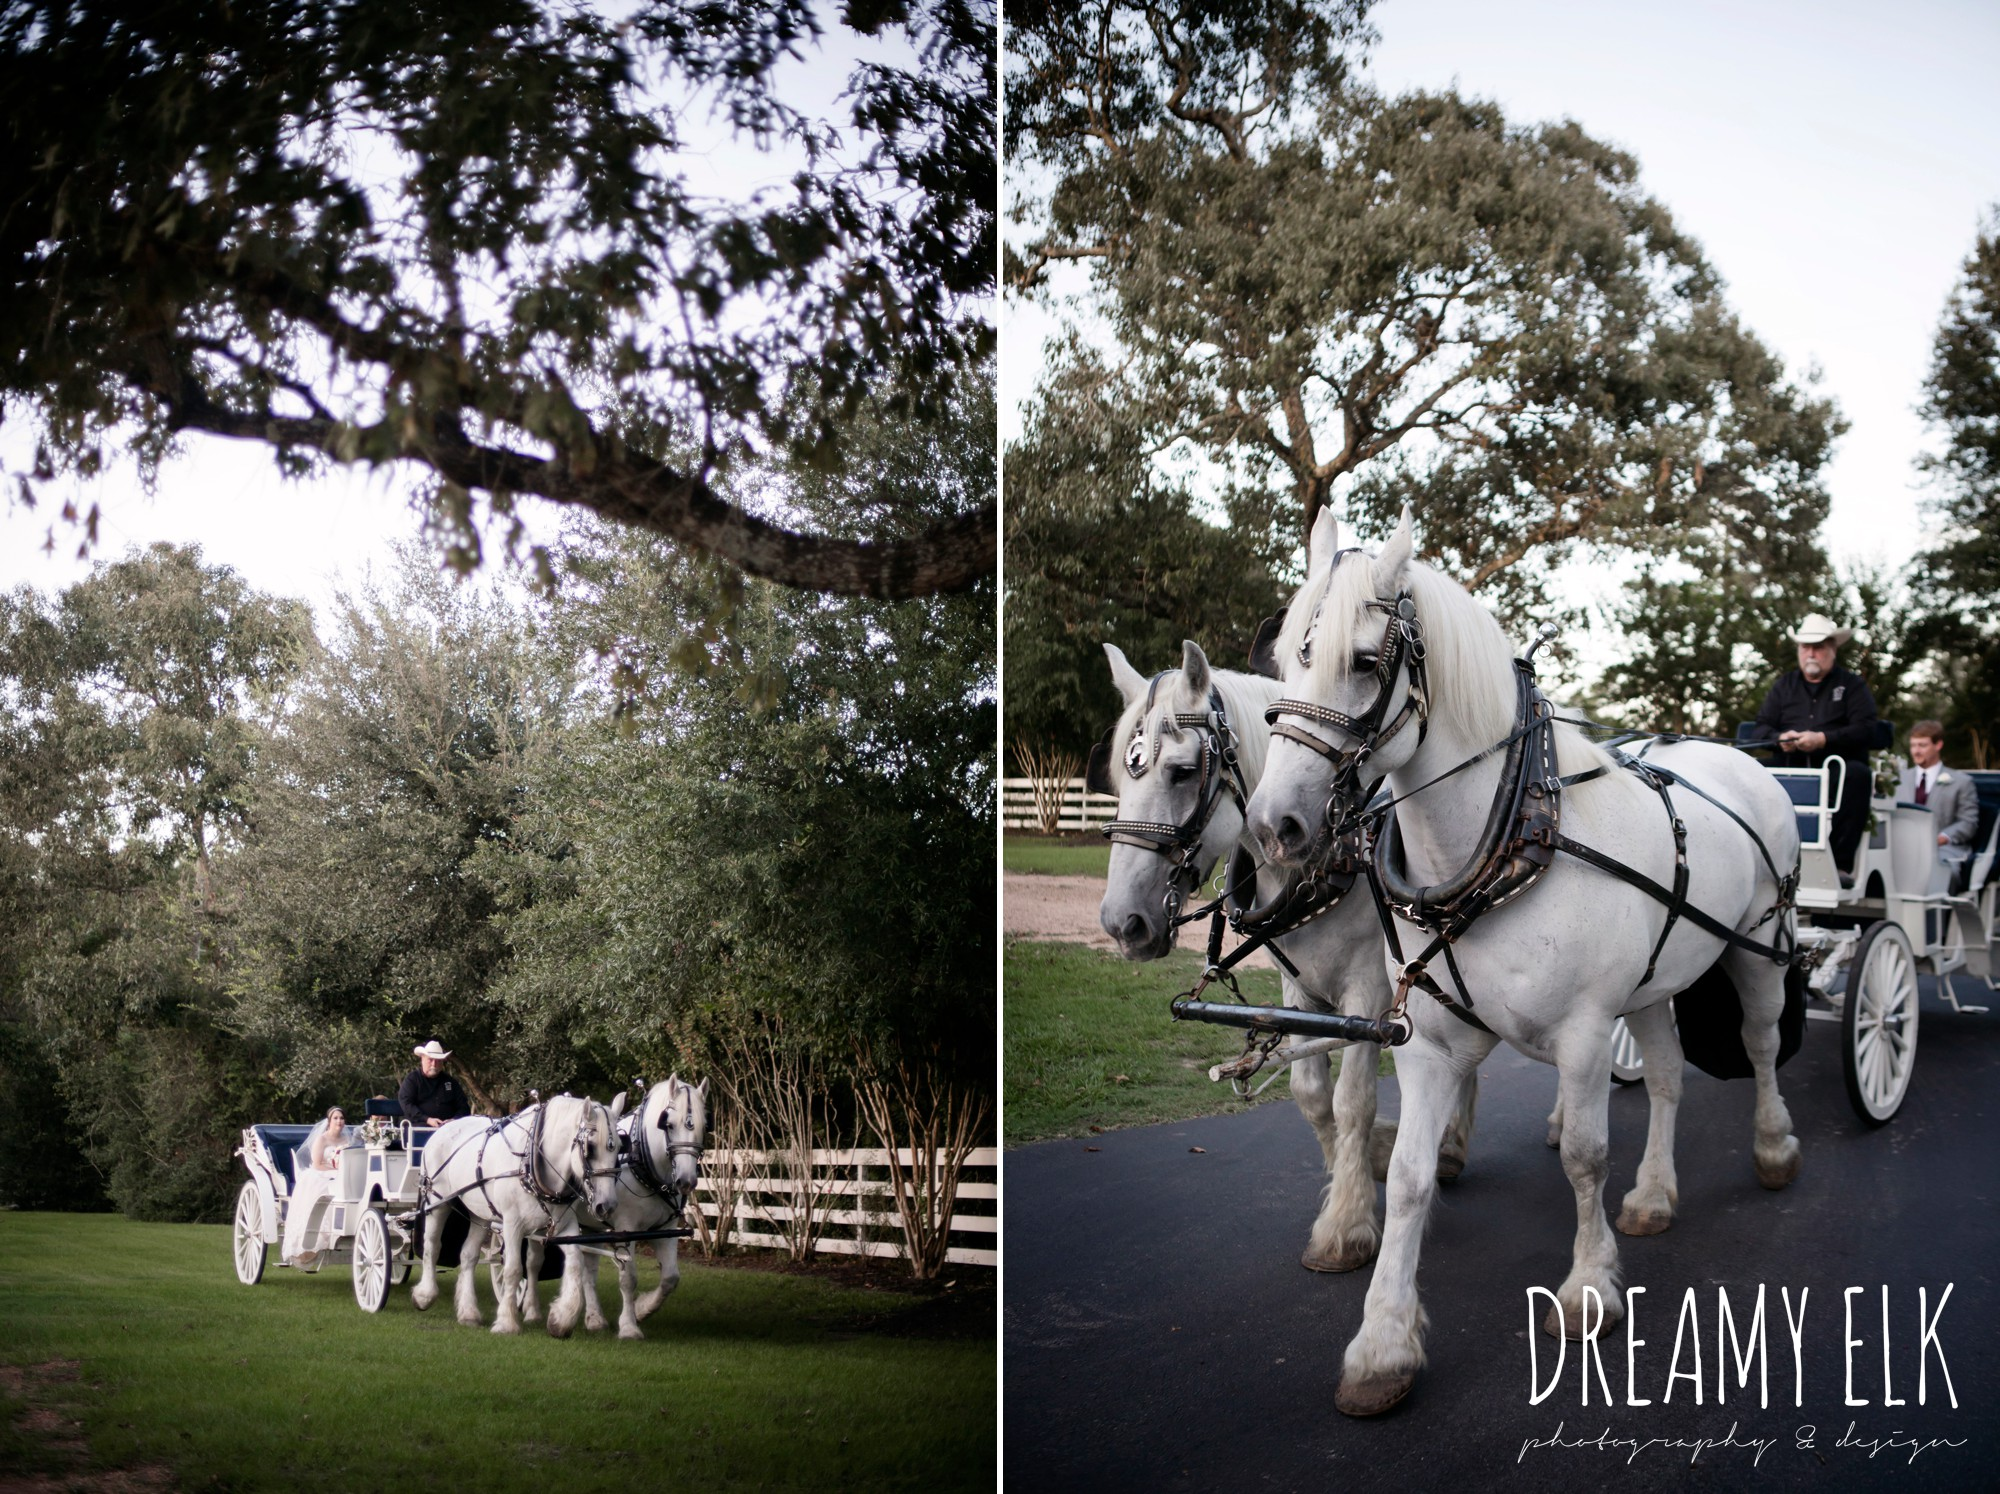 bride and groom in horse drawn carriage, classic carriage company, september wedding photo, ashelynn manor, magnolia, texas, austin texas wedding photographer {dreamy elk photography and design}